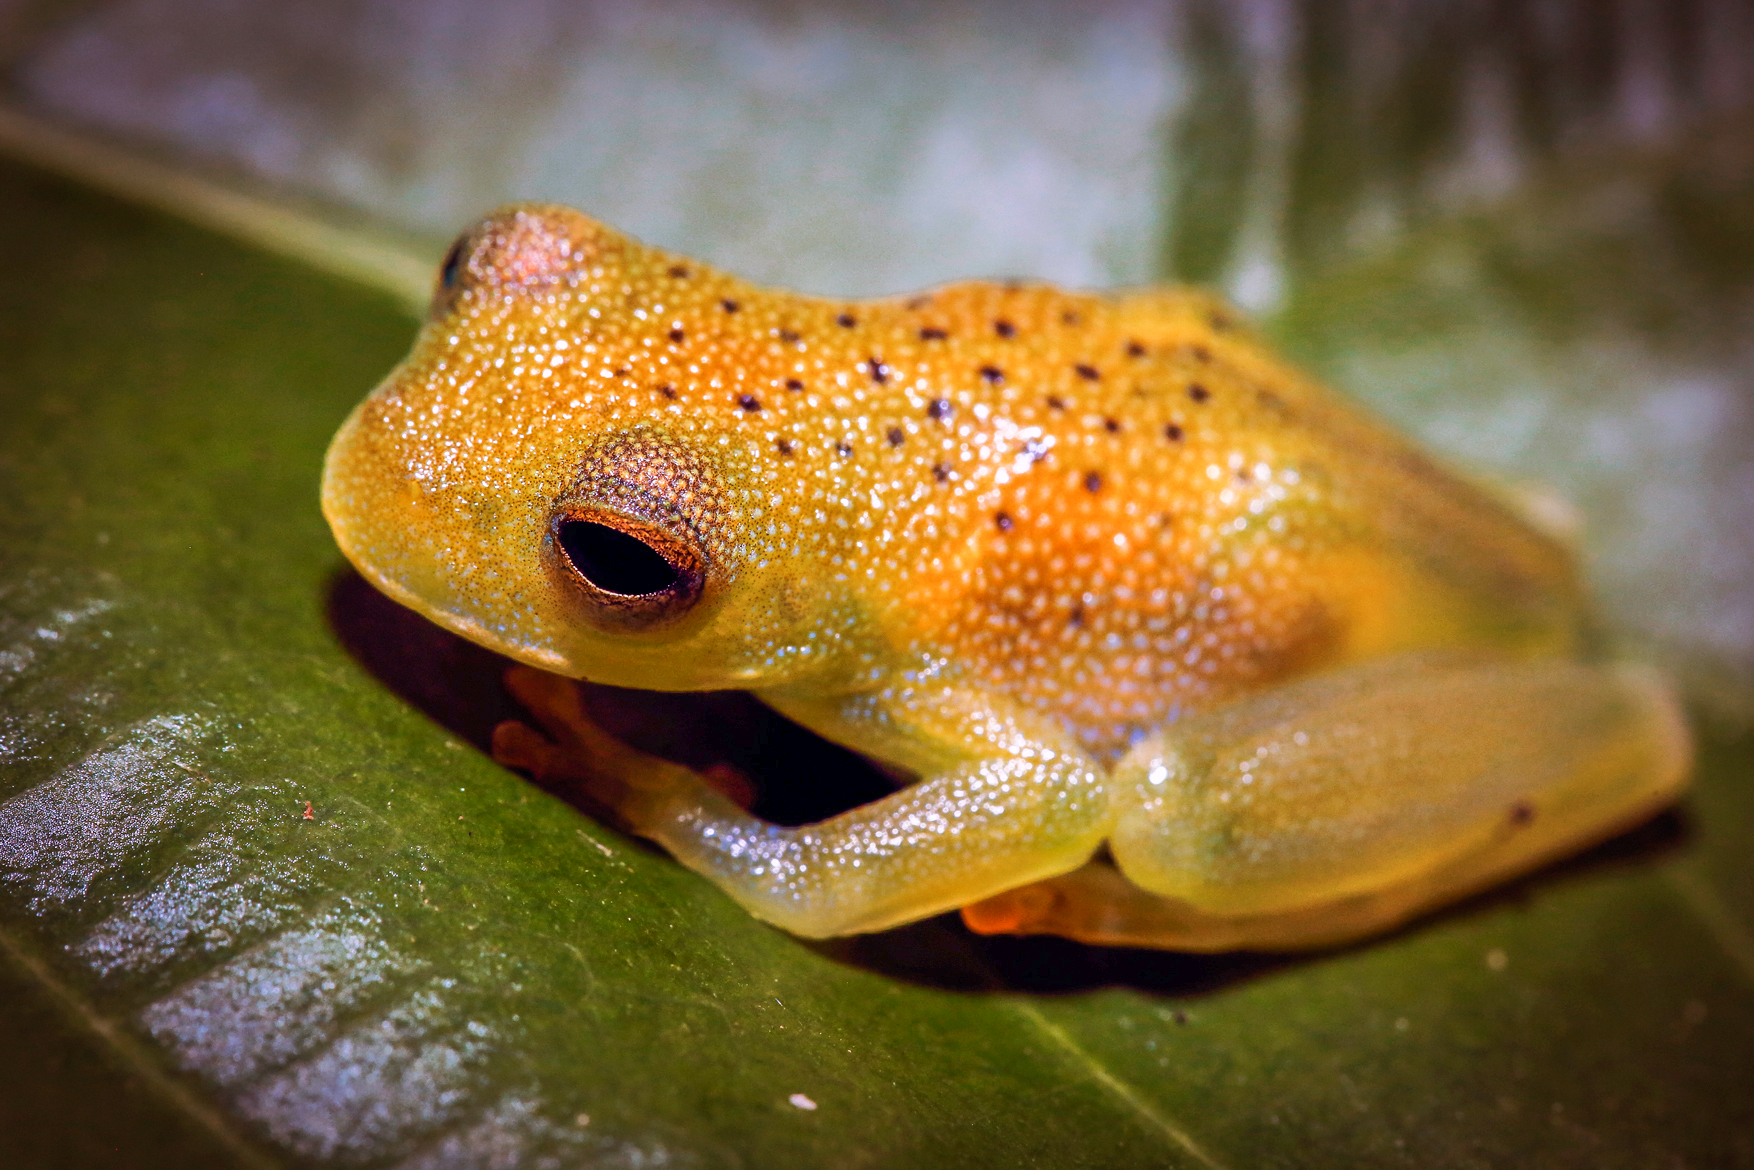 Sleepy Eyed Granular Glass Frog